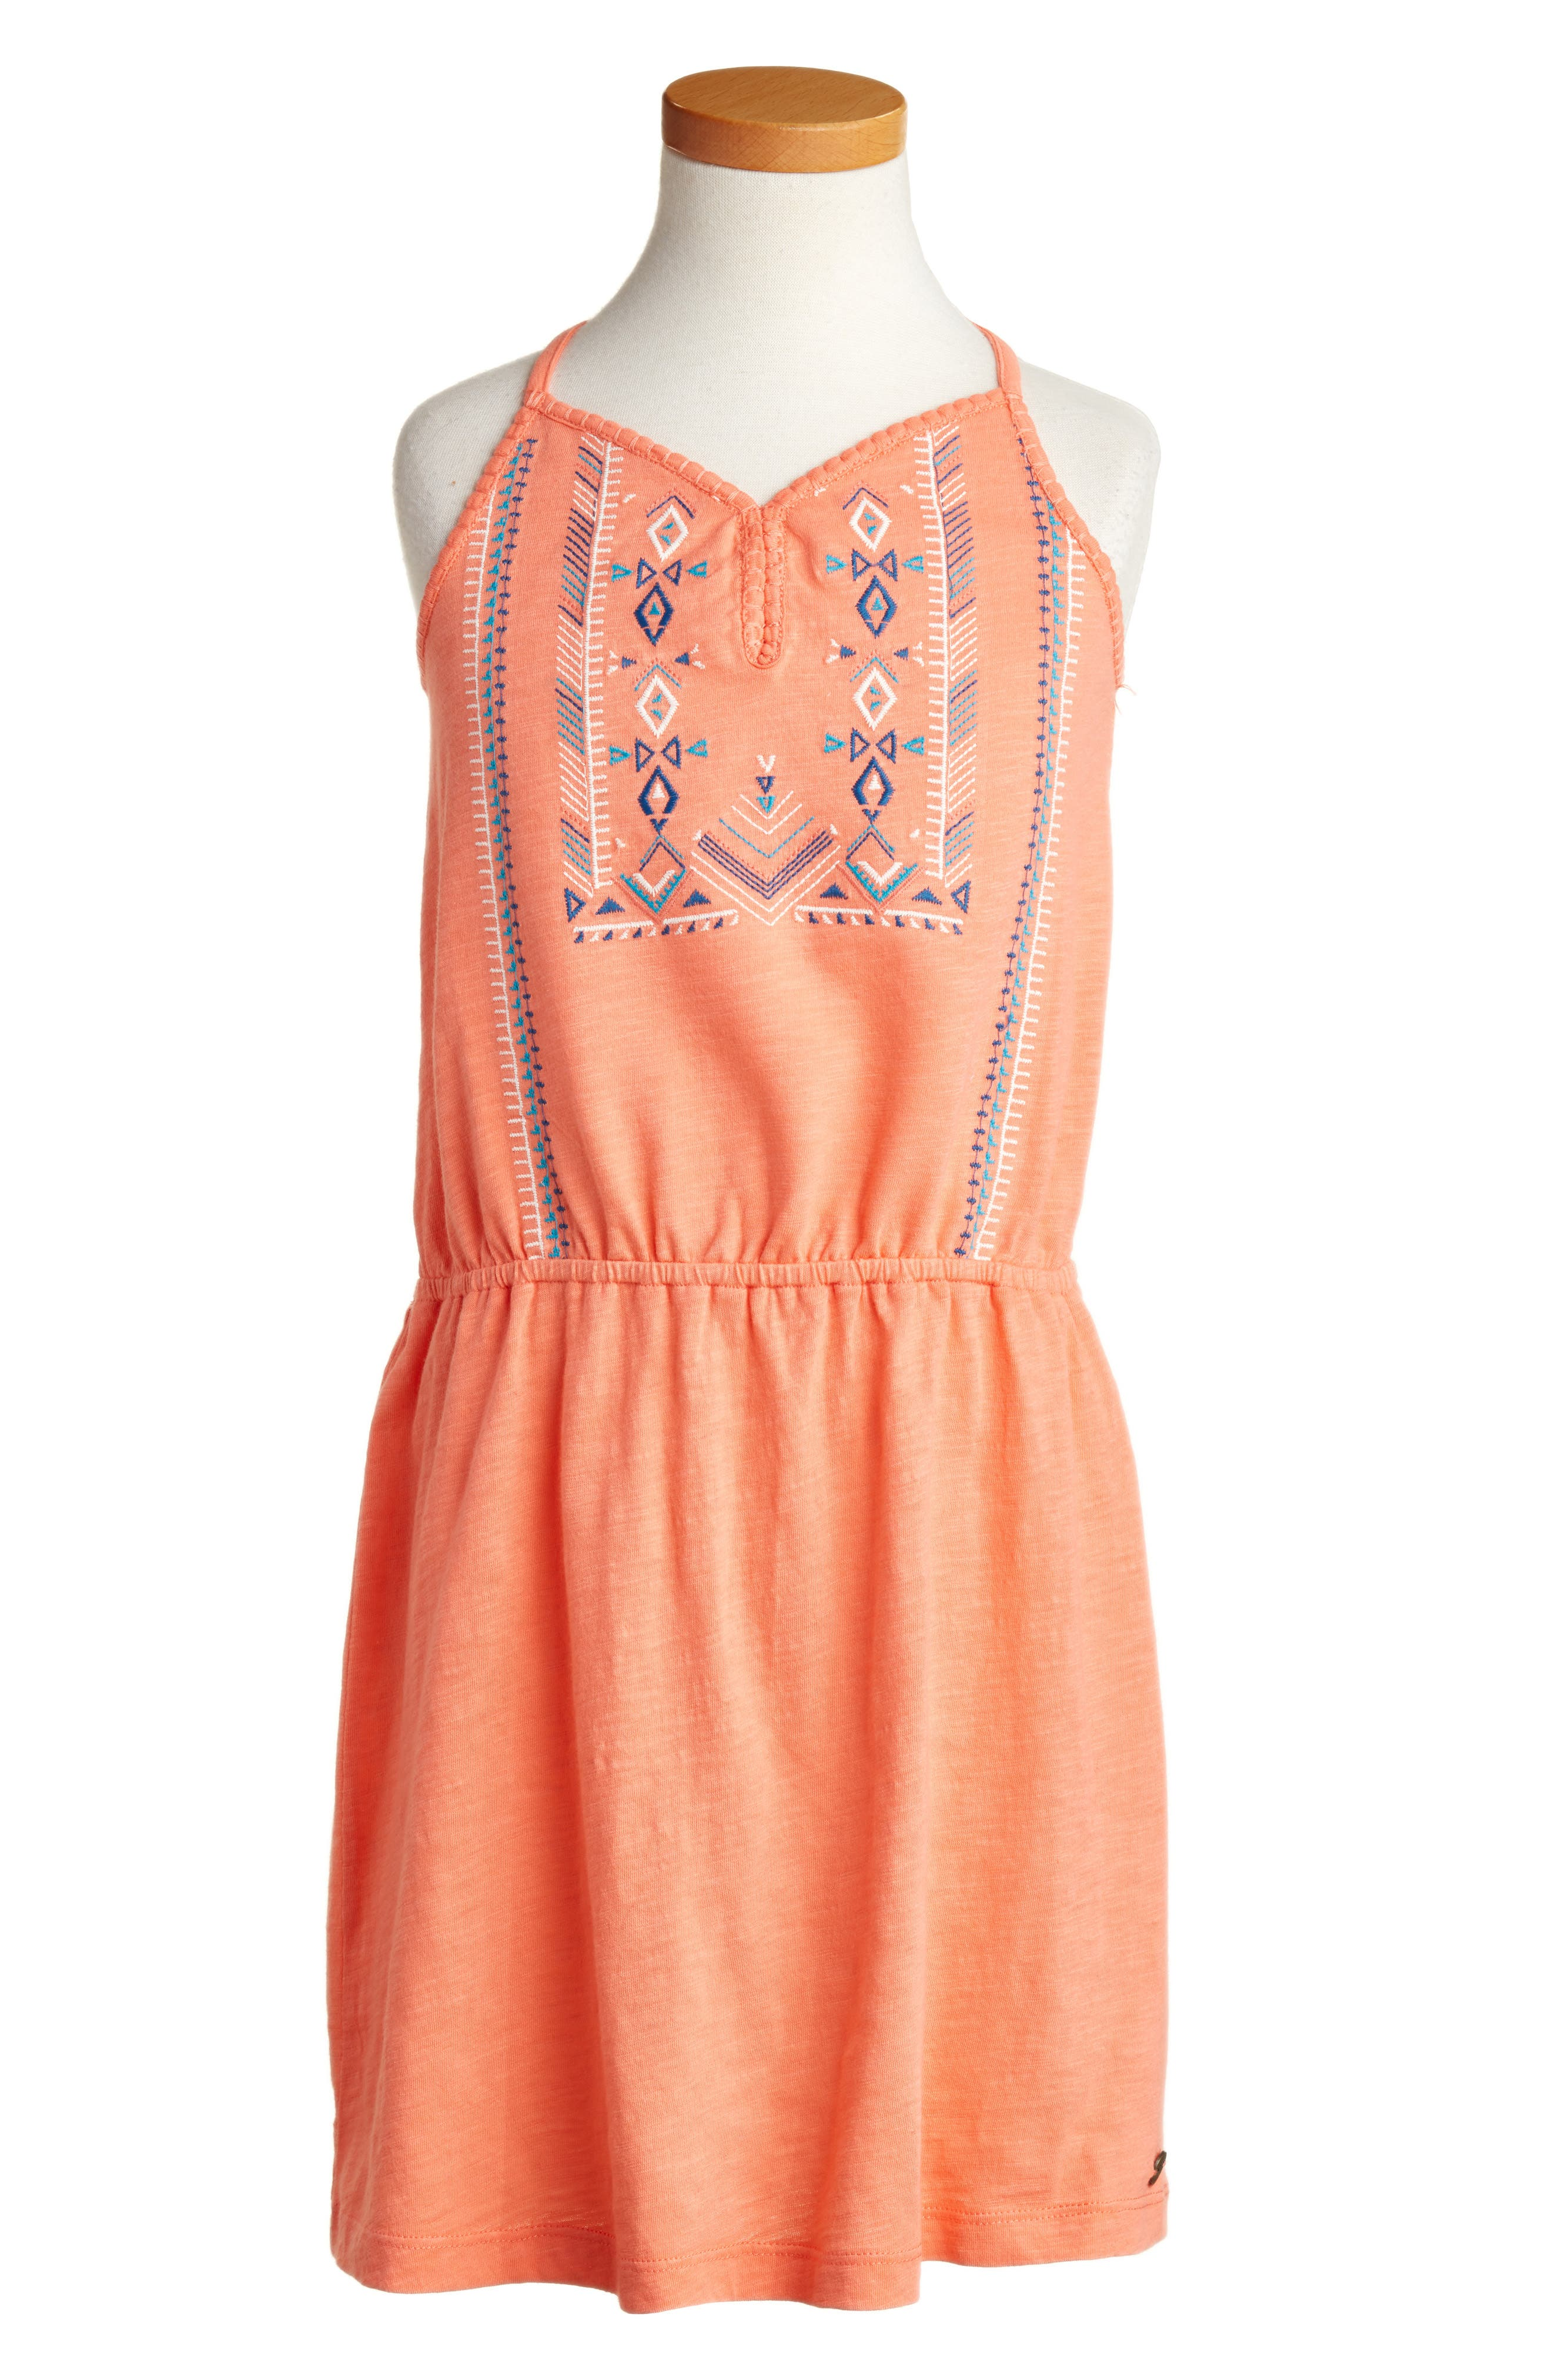 Roxy Nice Cream Embroidered Dress (Big Girls)